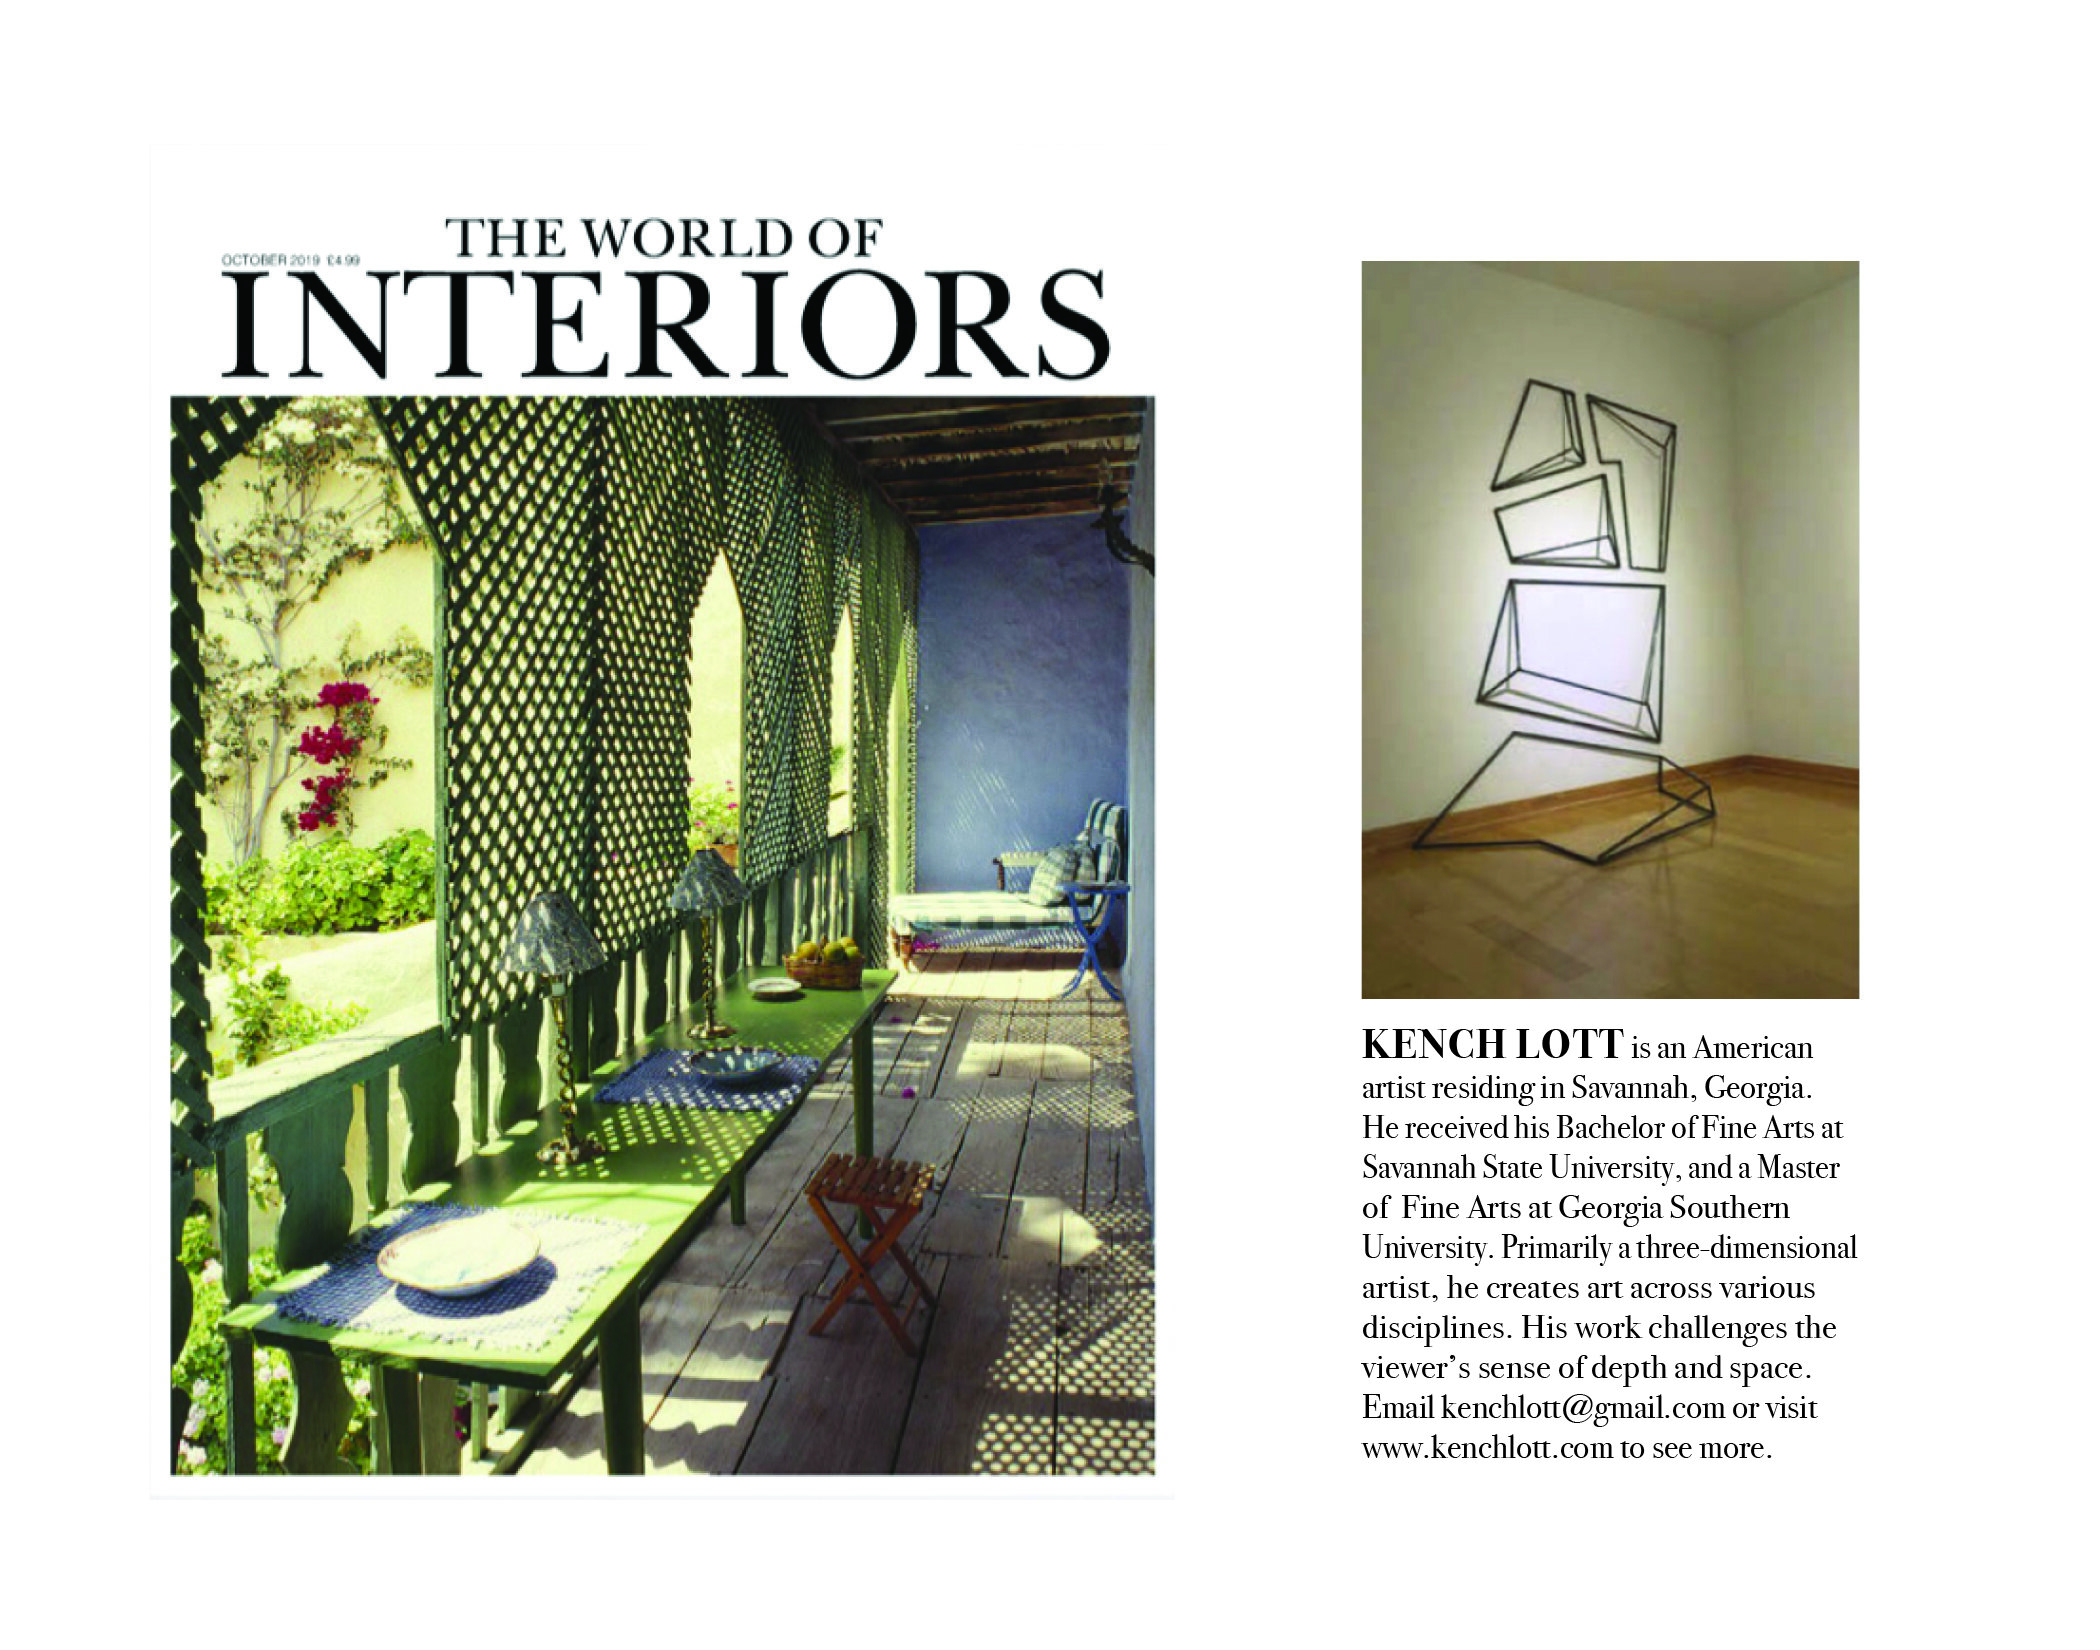 The World of Interiors ( October 2019 issue)